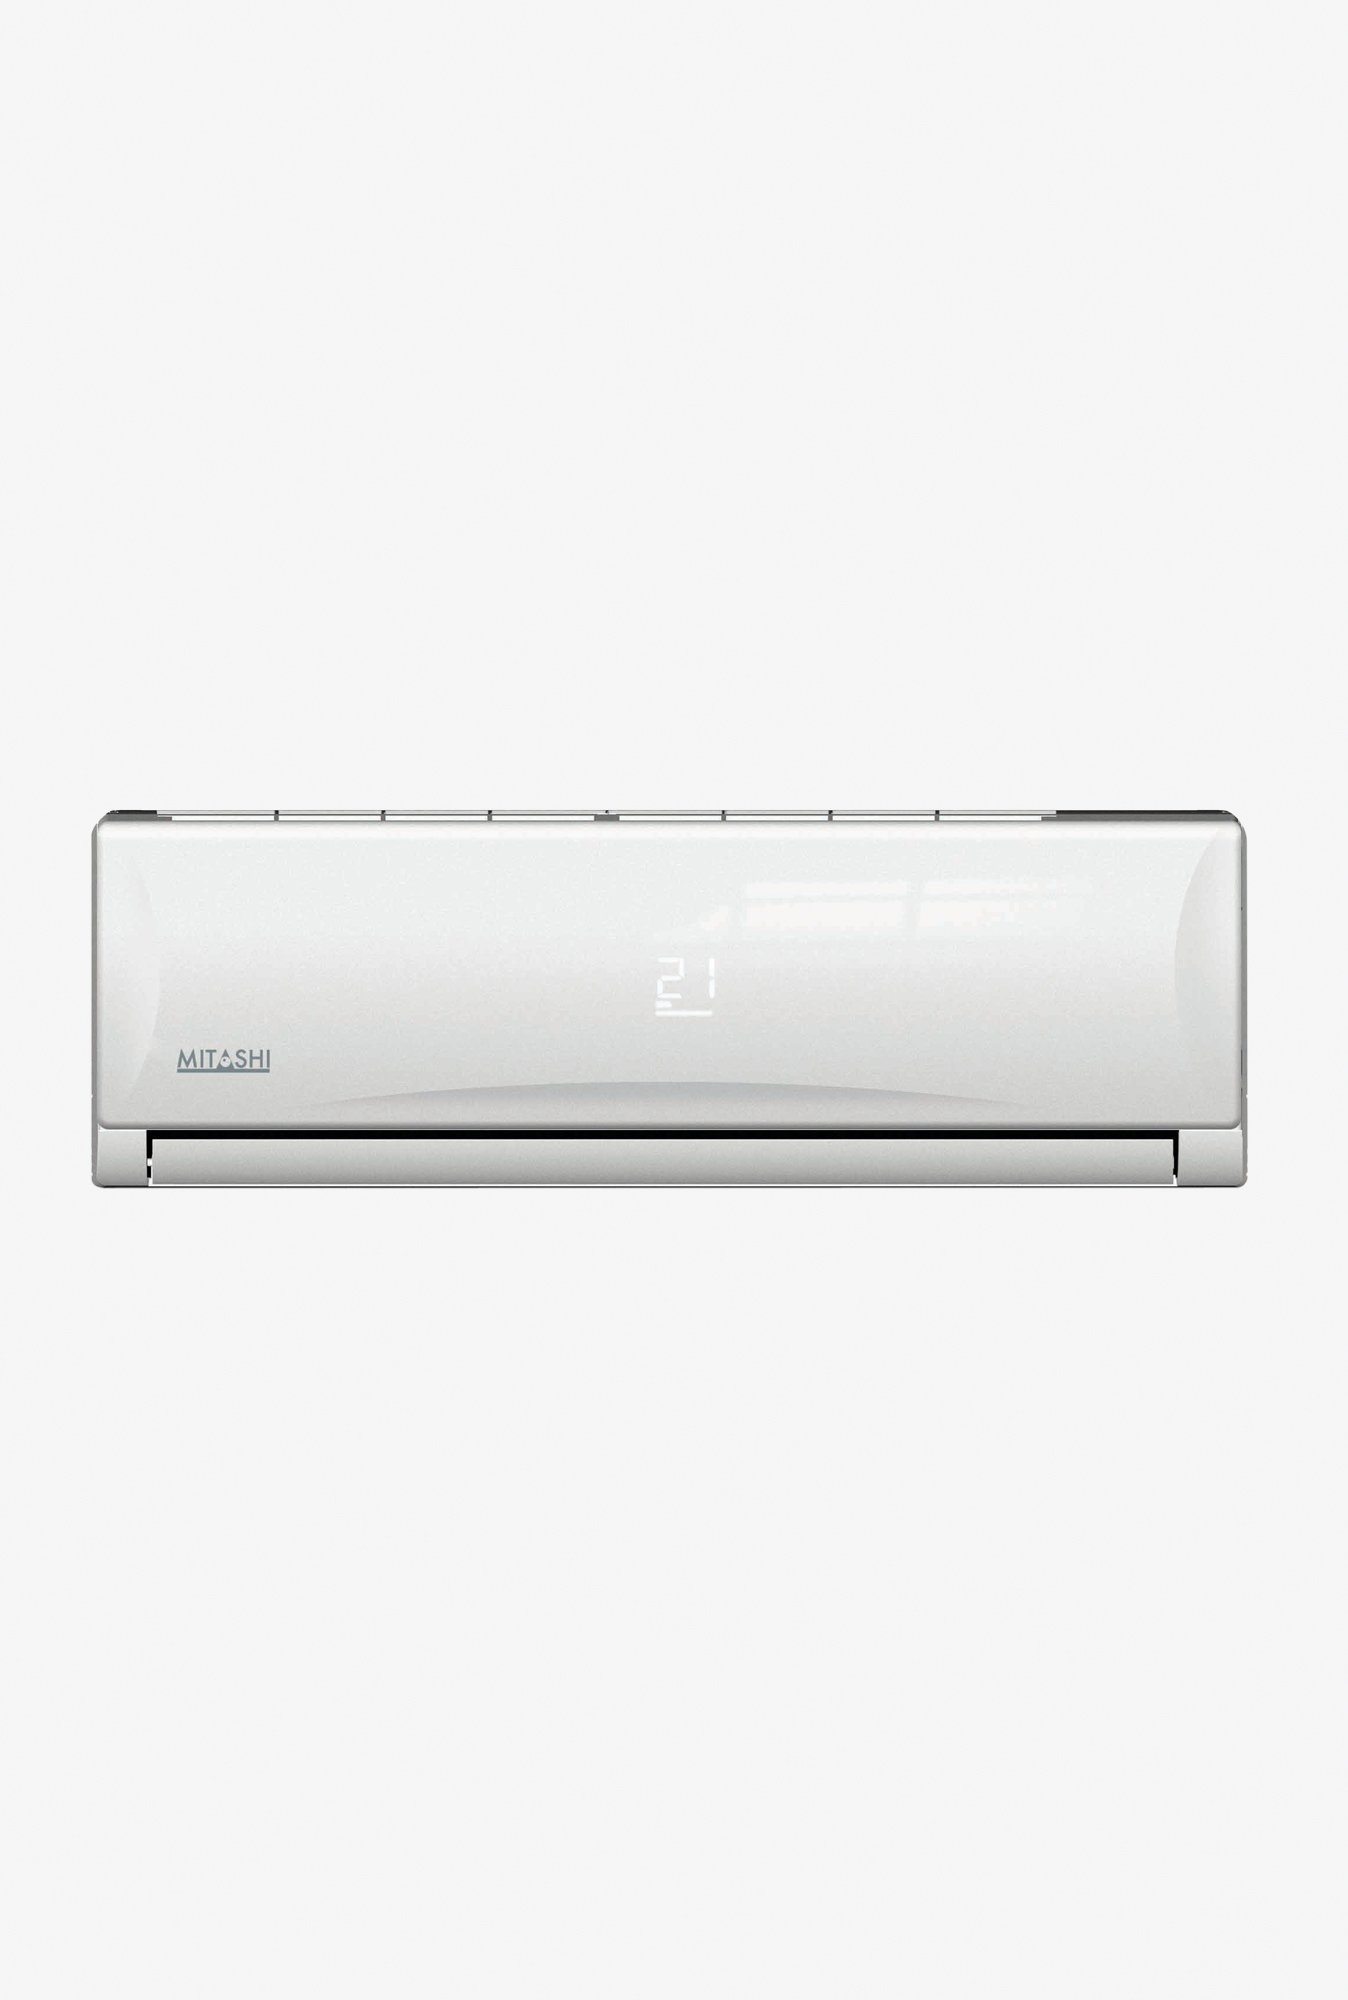 Mitashi MiSAC153v10 1.5 Ton 3 Star Split AC Copper (White)